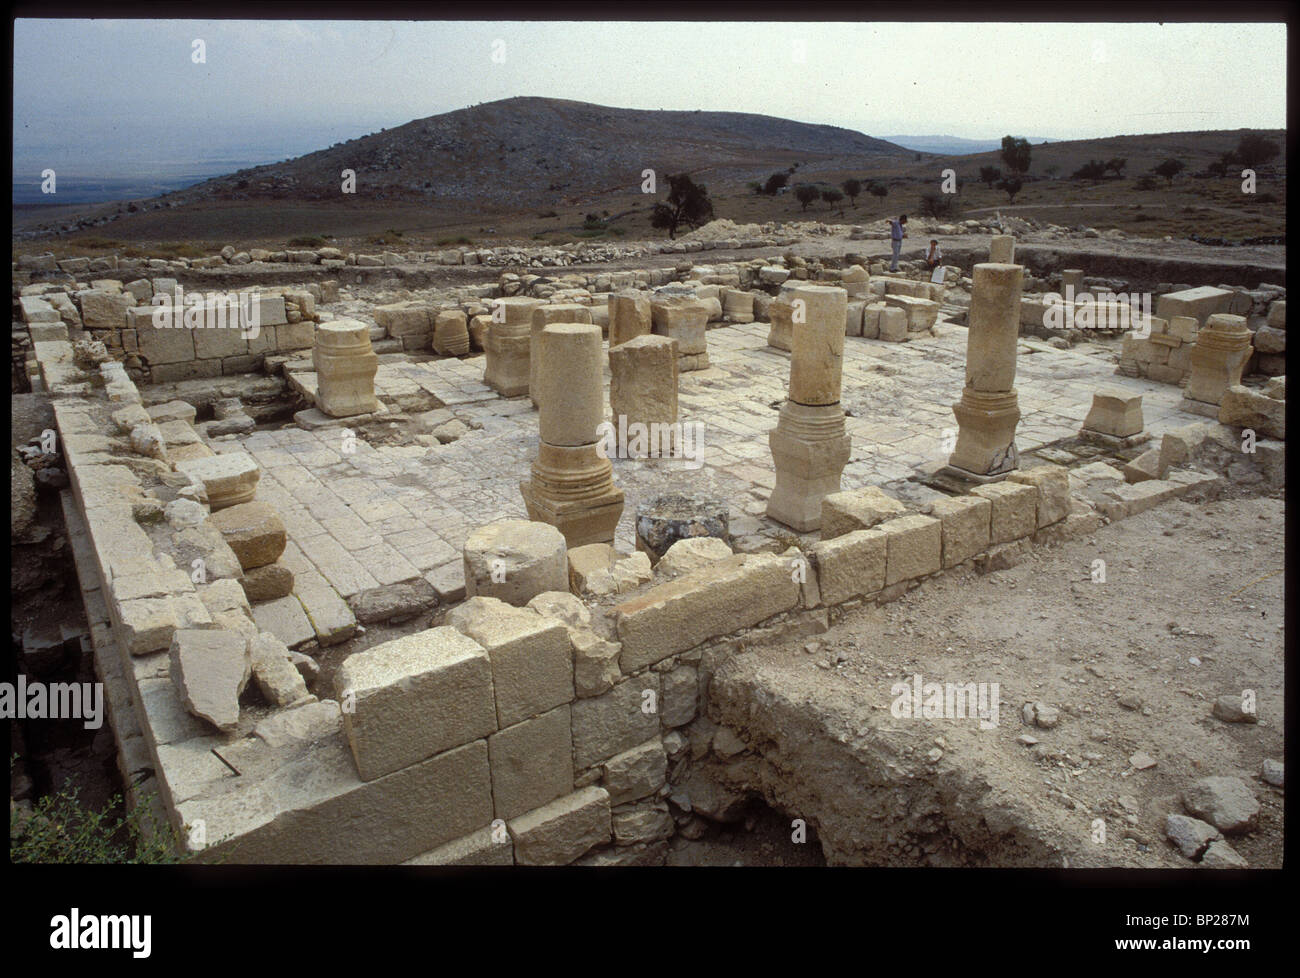 1917. MEROTH, REMAINS OF THE 5TH. C. SYNAGOGUE IN UPPER GALILEE - Stock Image